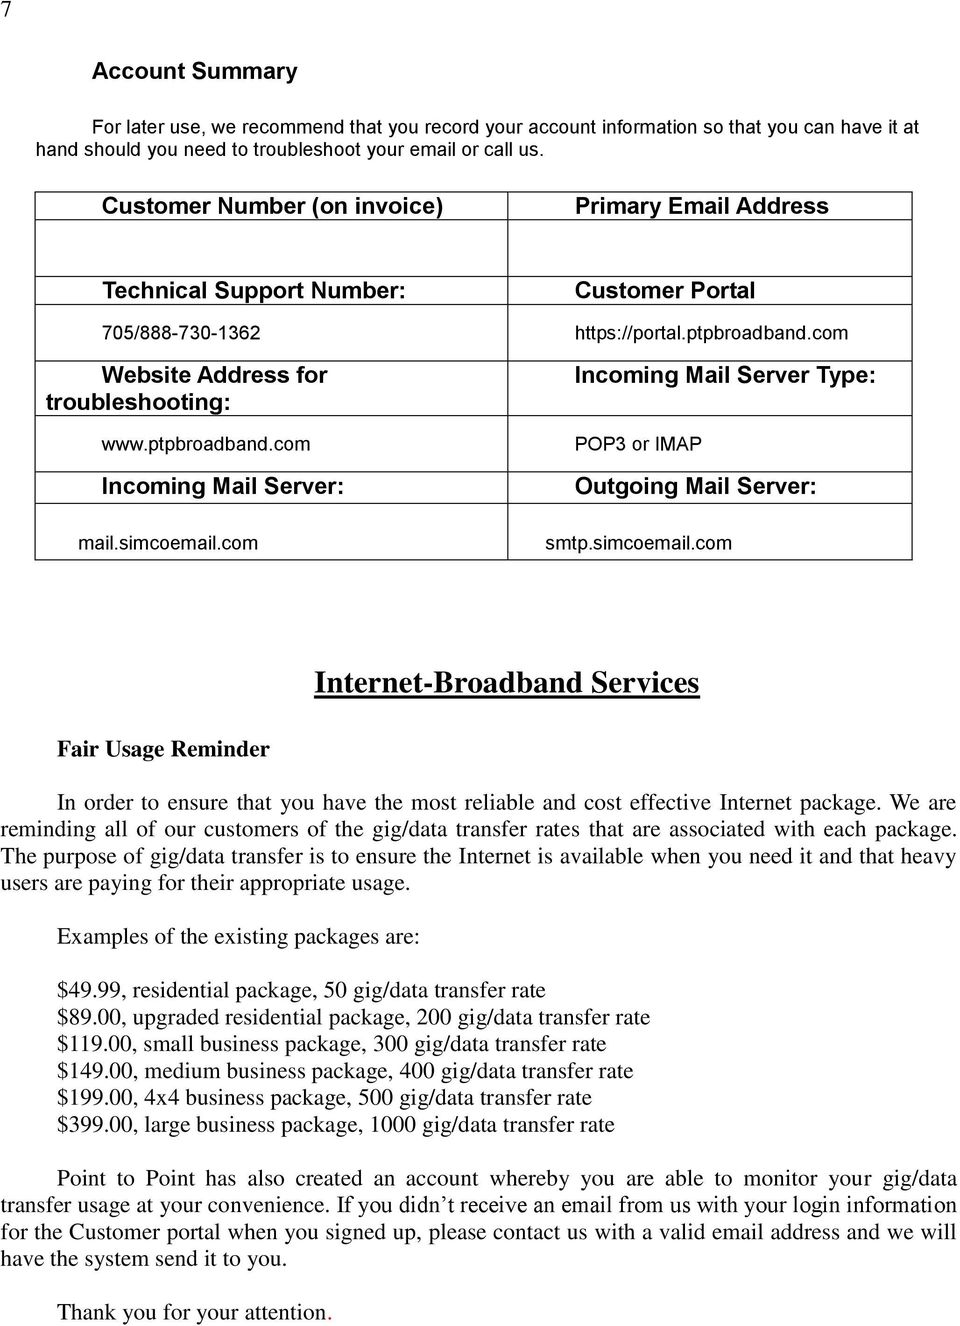 Internet Service Business - PDF